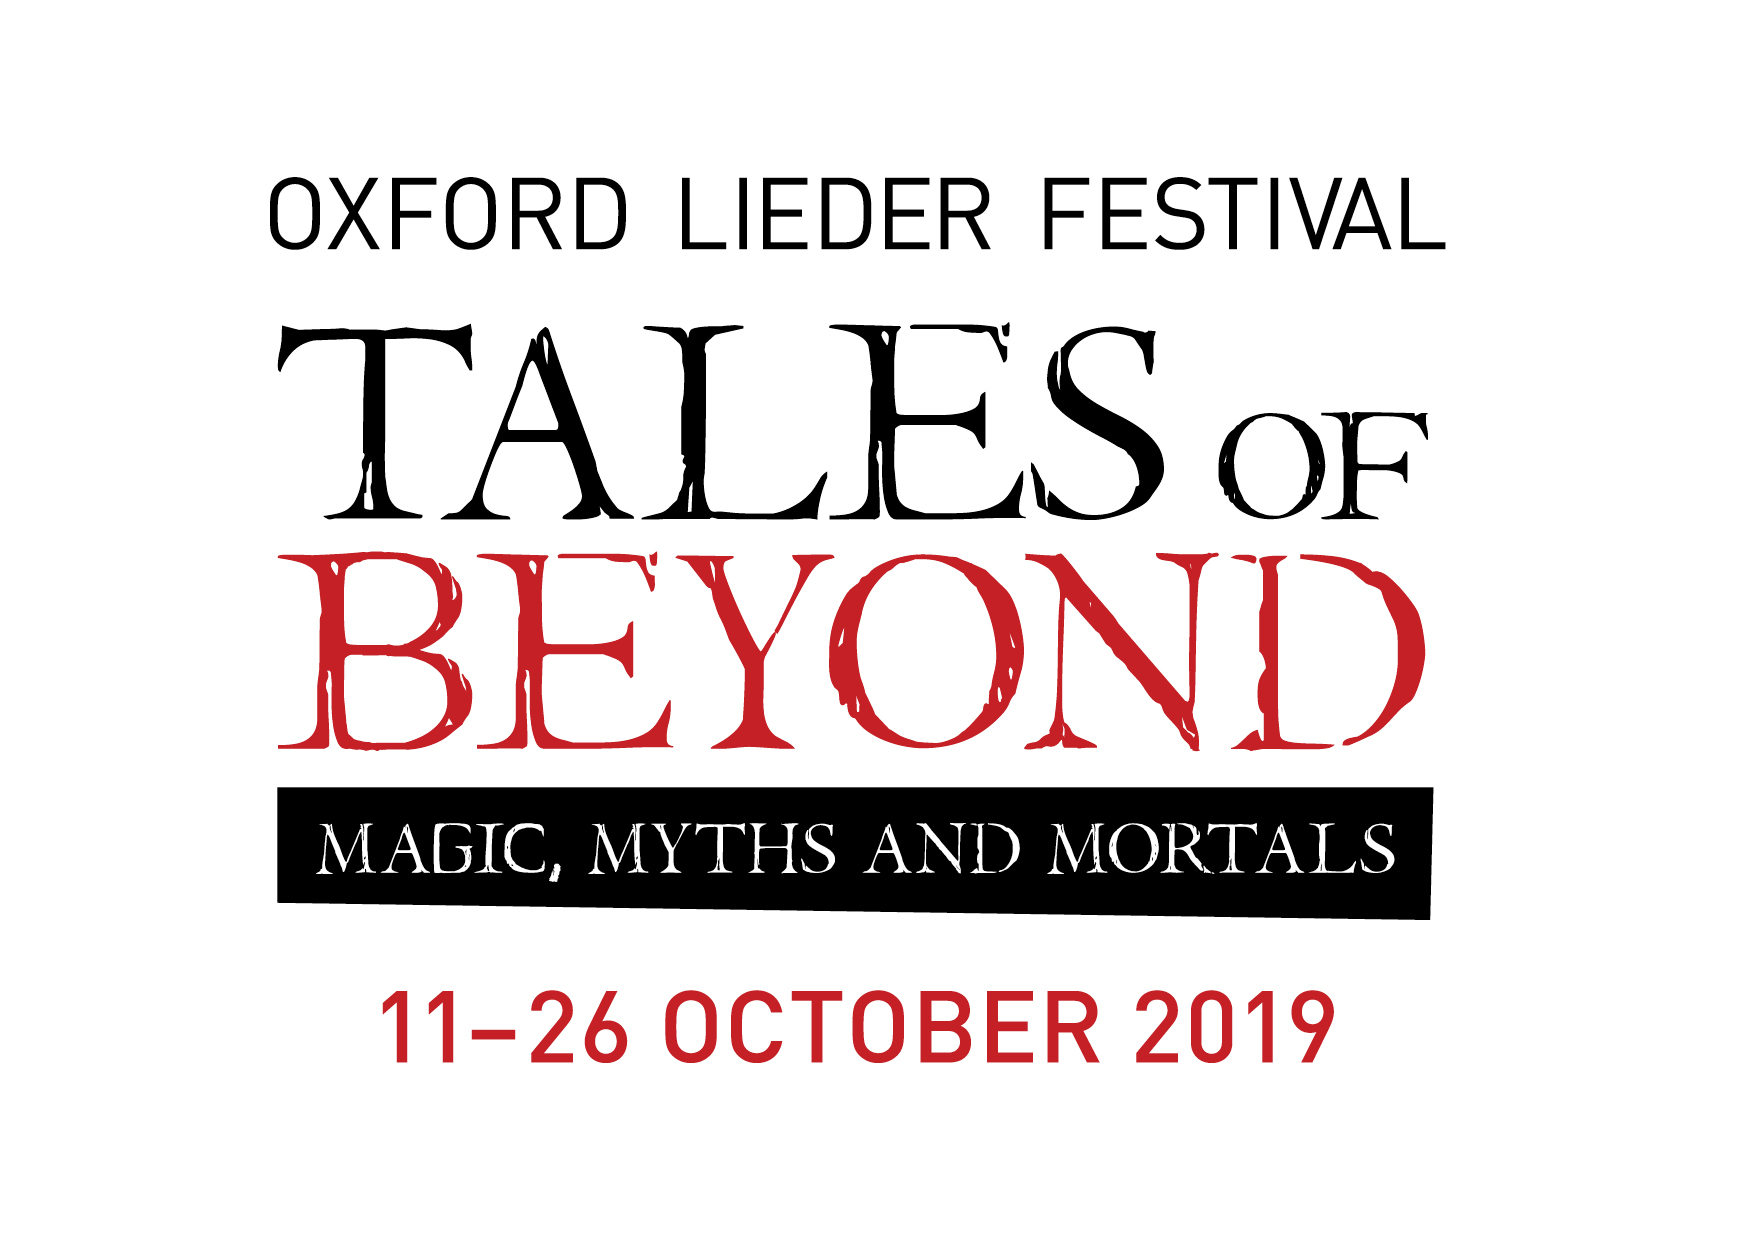 Oxford Lieder Festival 2019: Clara Schumann: Rethinking the Myth: Kitty Whately, Joe Davies, Tara Erraught, James Baillieu & Natasha Loges